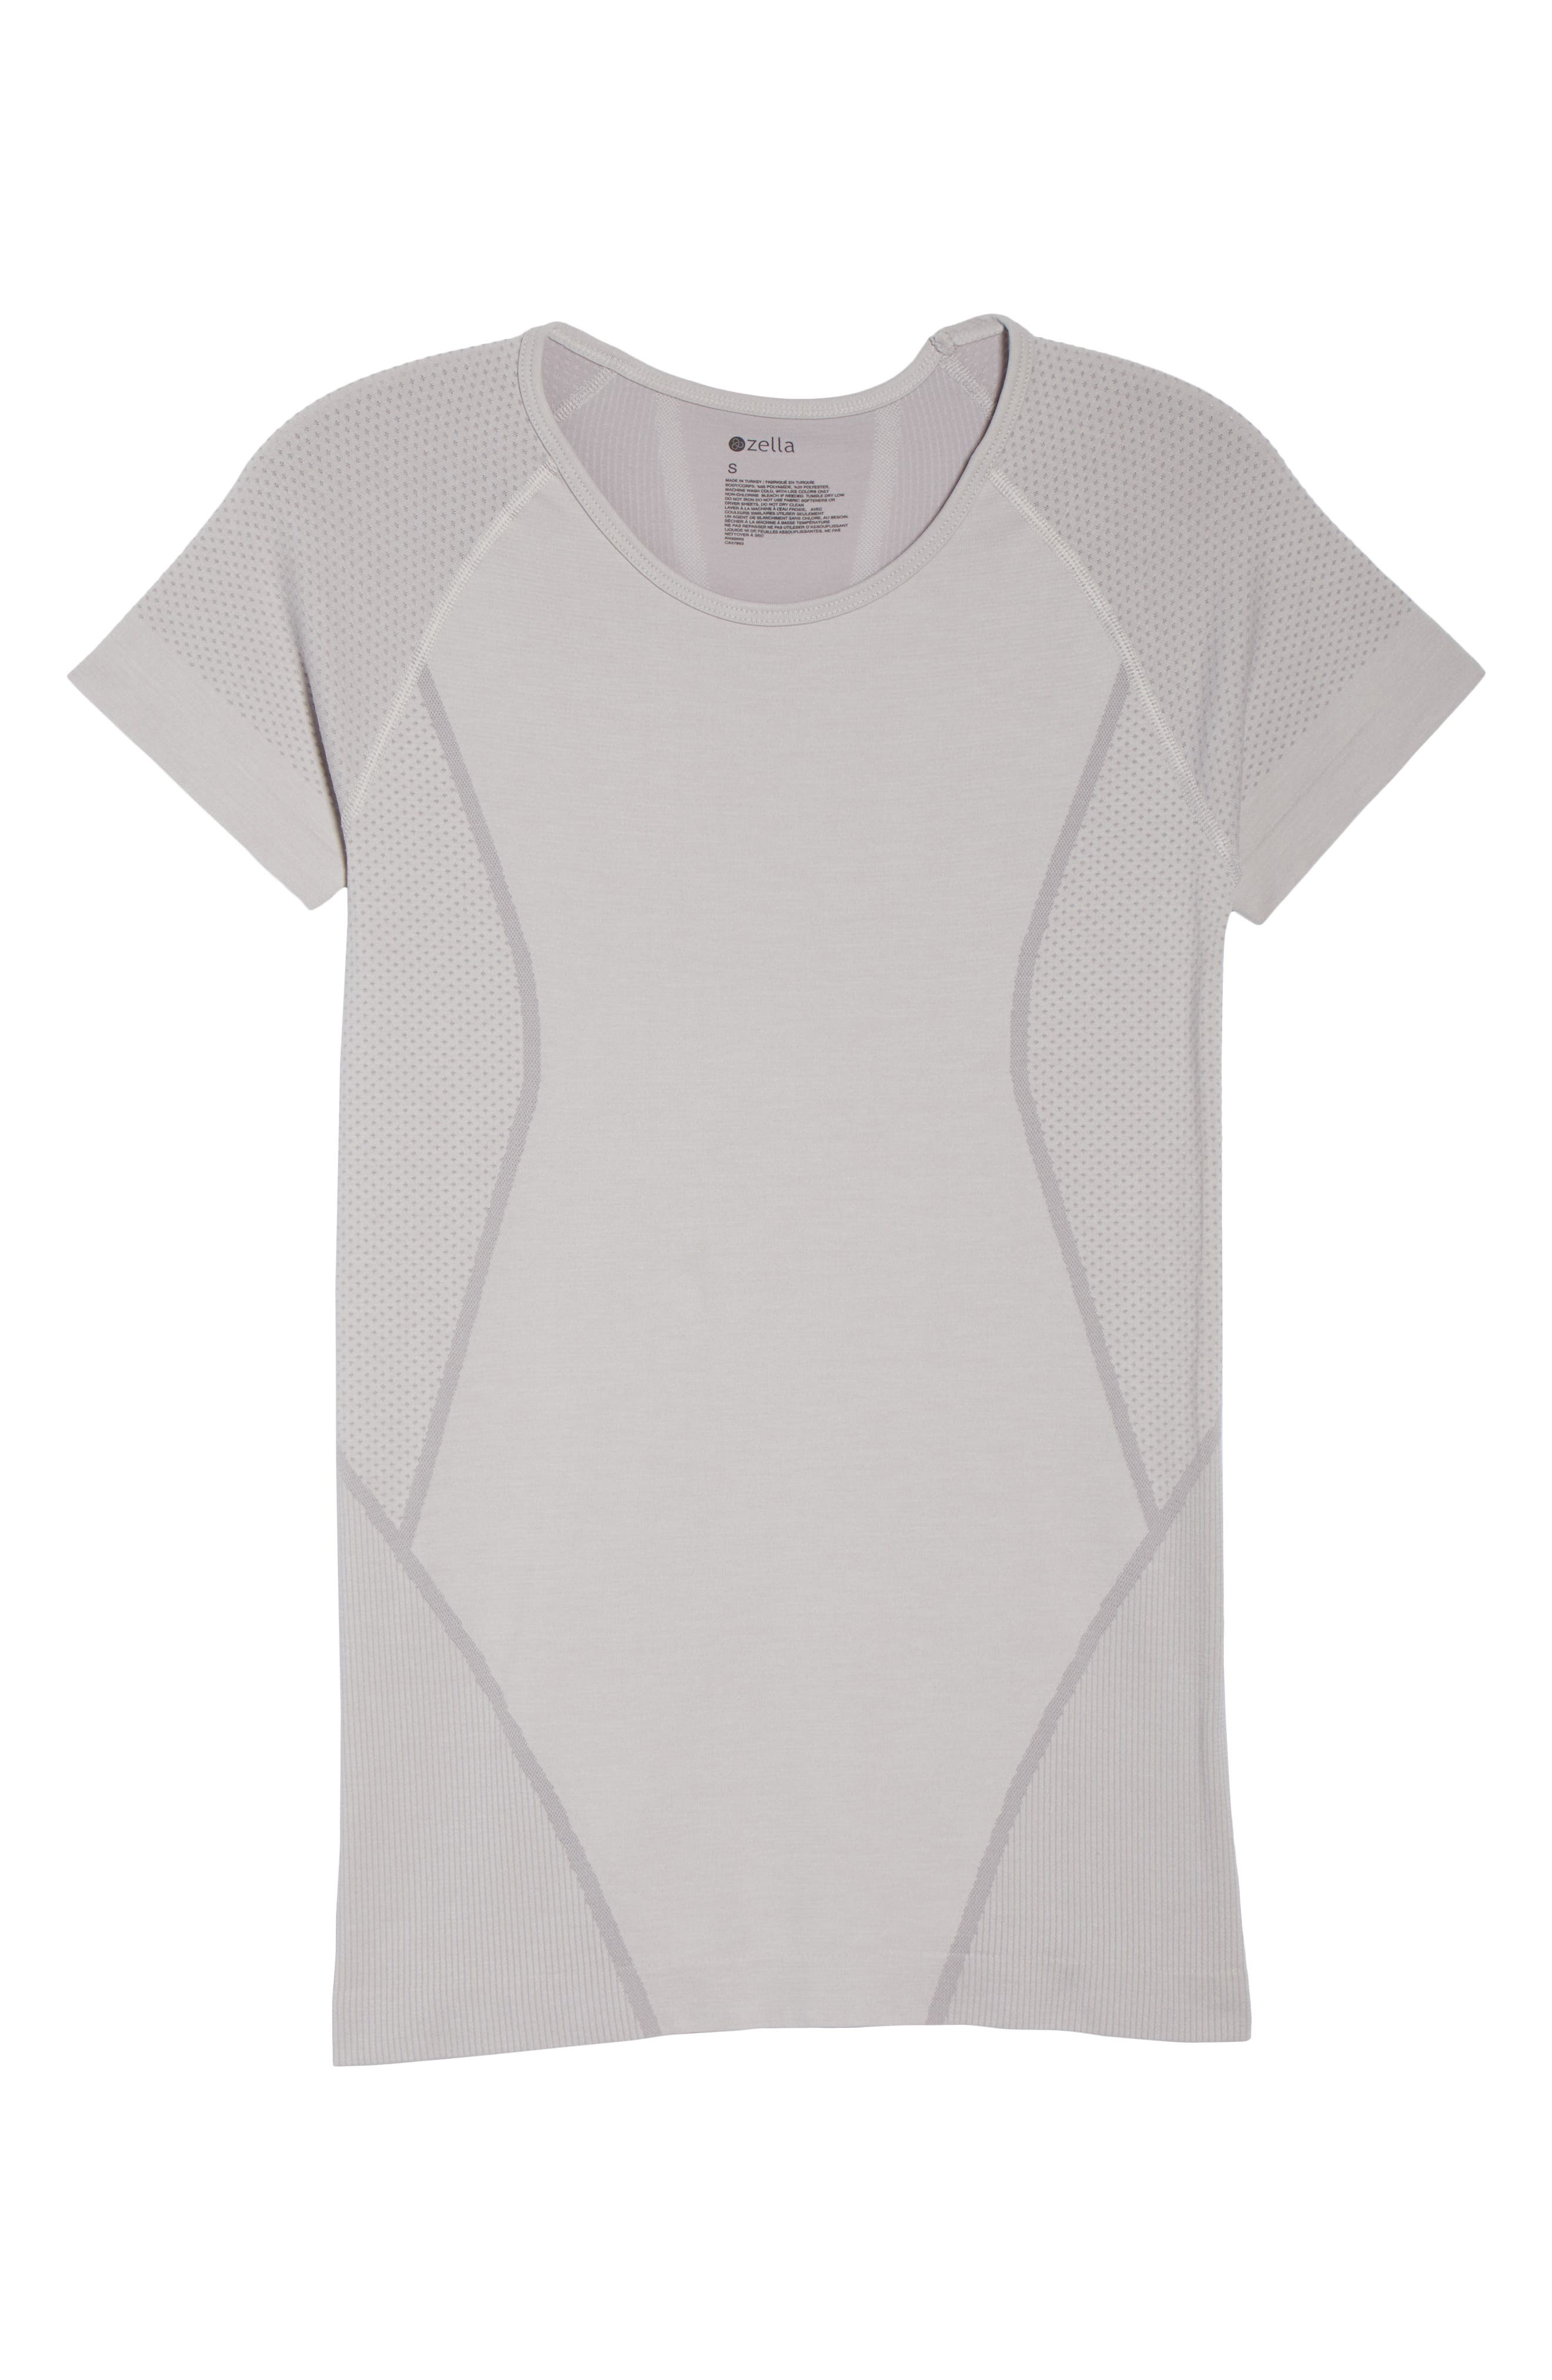 ZELLA, Stand Out Seamless Training Tee, Alternate thumbnail 7, color, 050